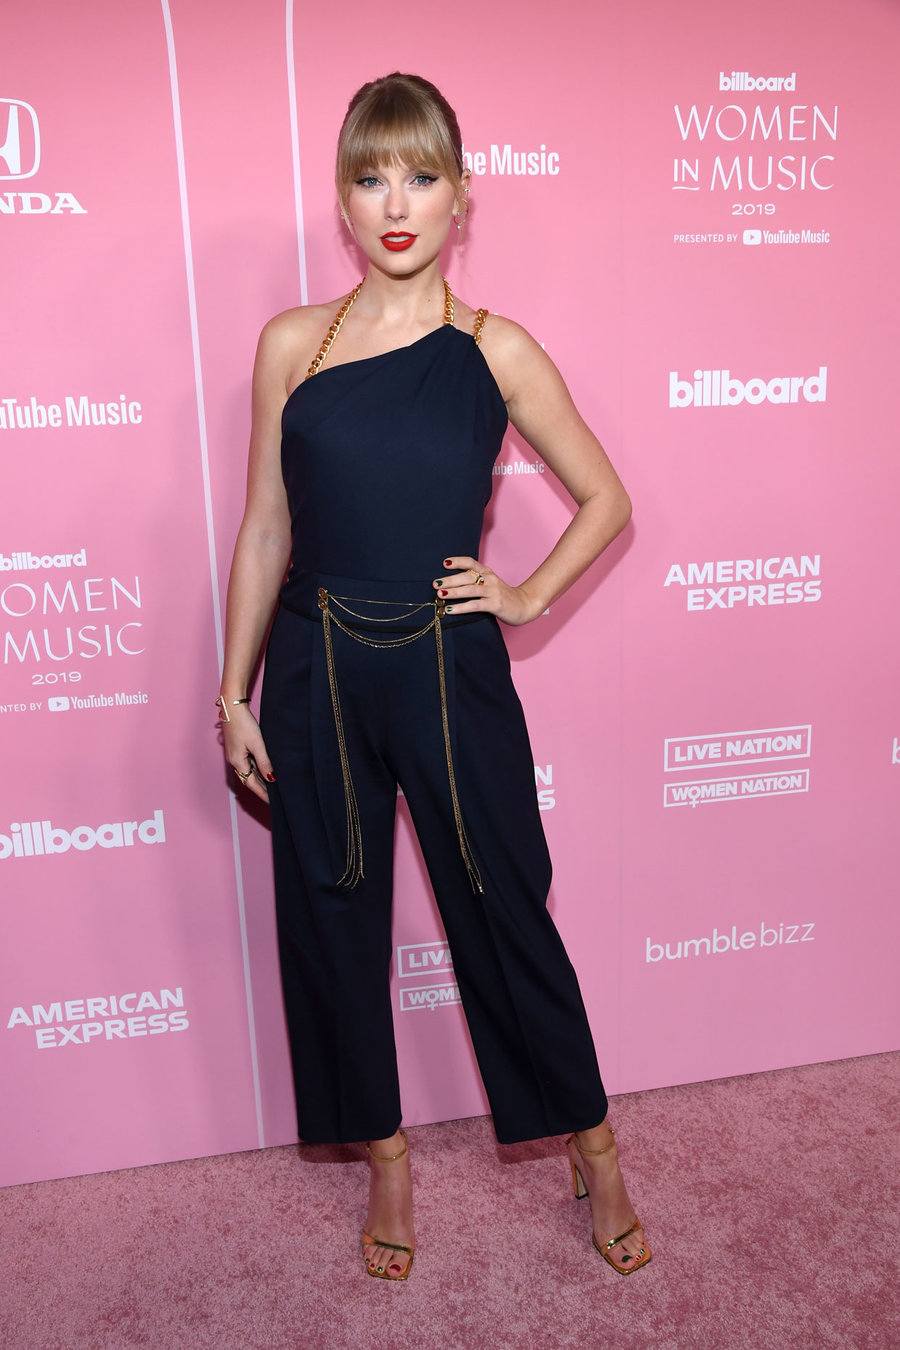 Photo of Billboard Women In Music 2019